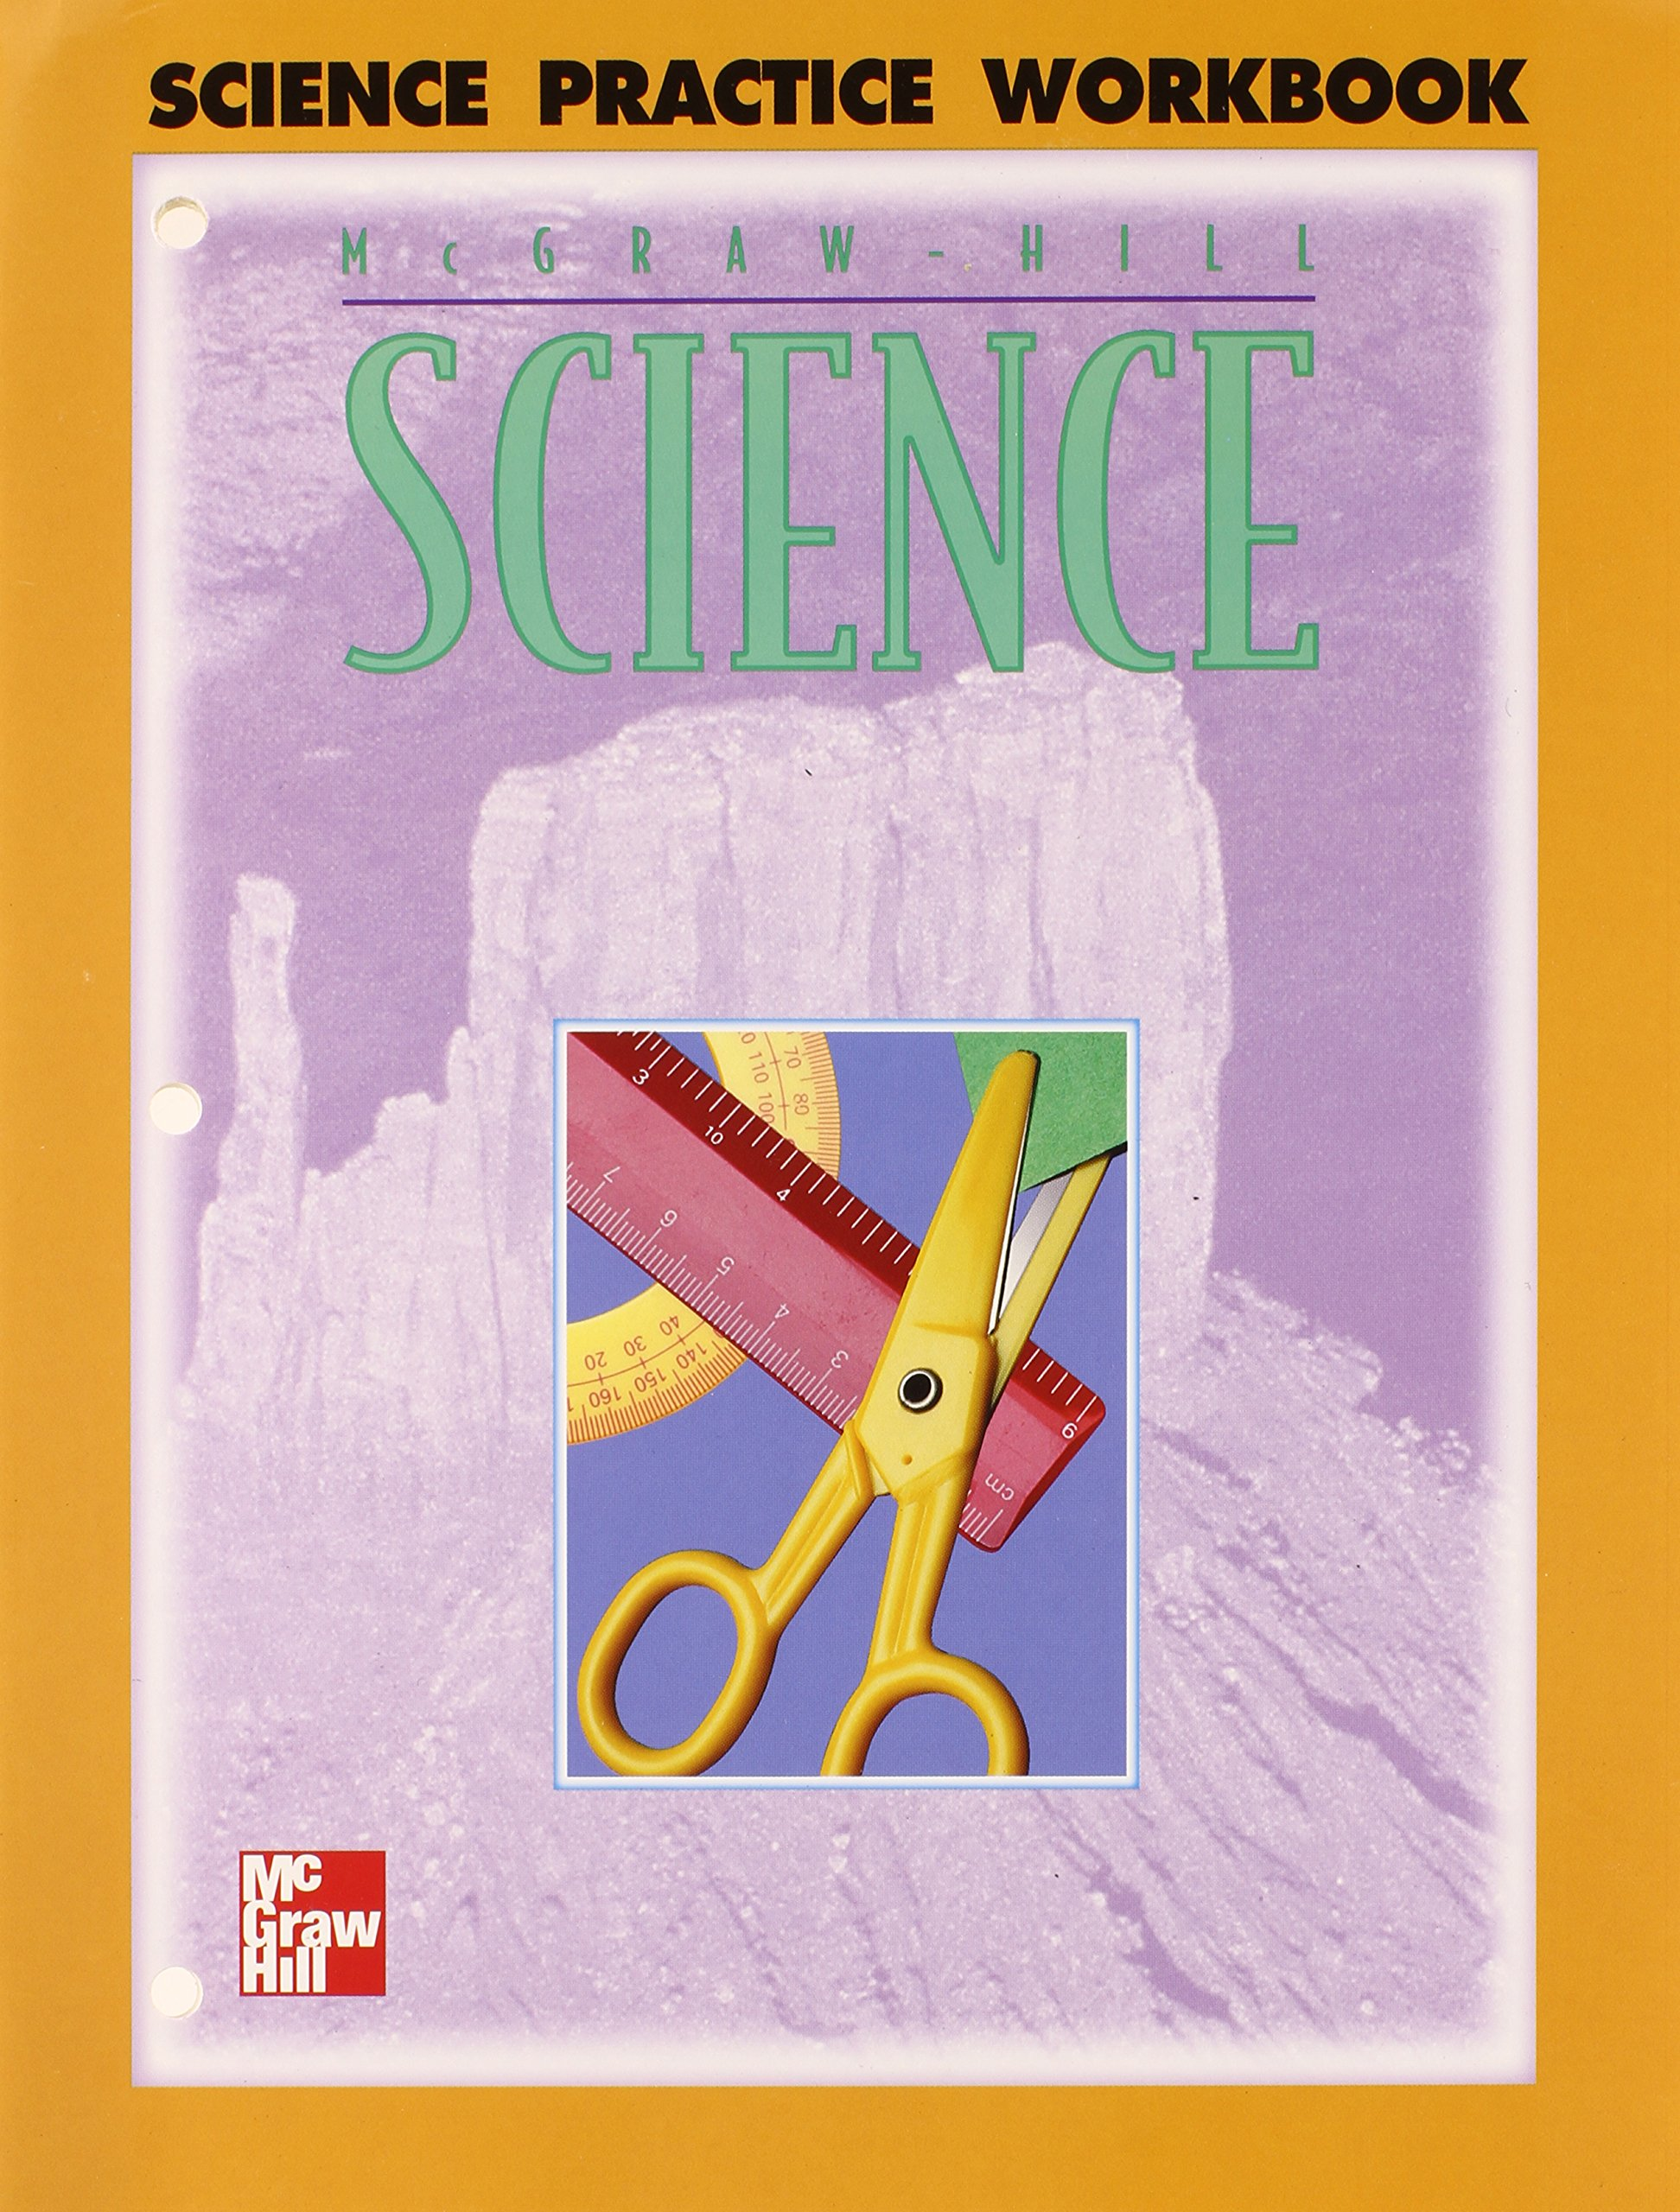 Mcgraw hill science practice workbook grade 4 mcgraw hil mcgraw hill science practice workbook grade 4 mcgraw hil 9780022777081 amazon books fandeluxe Images